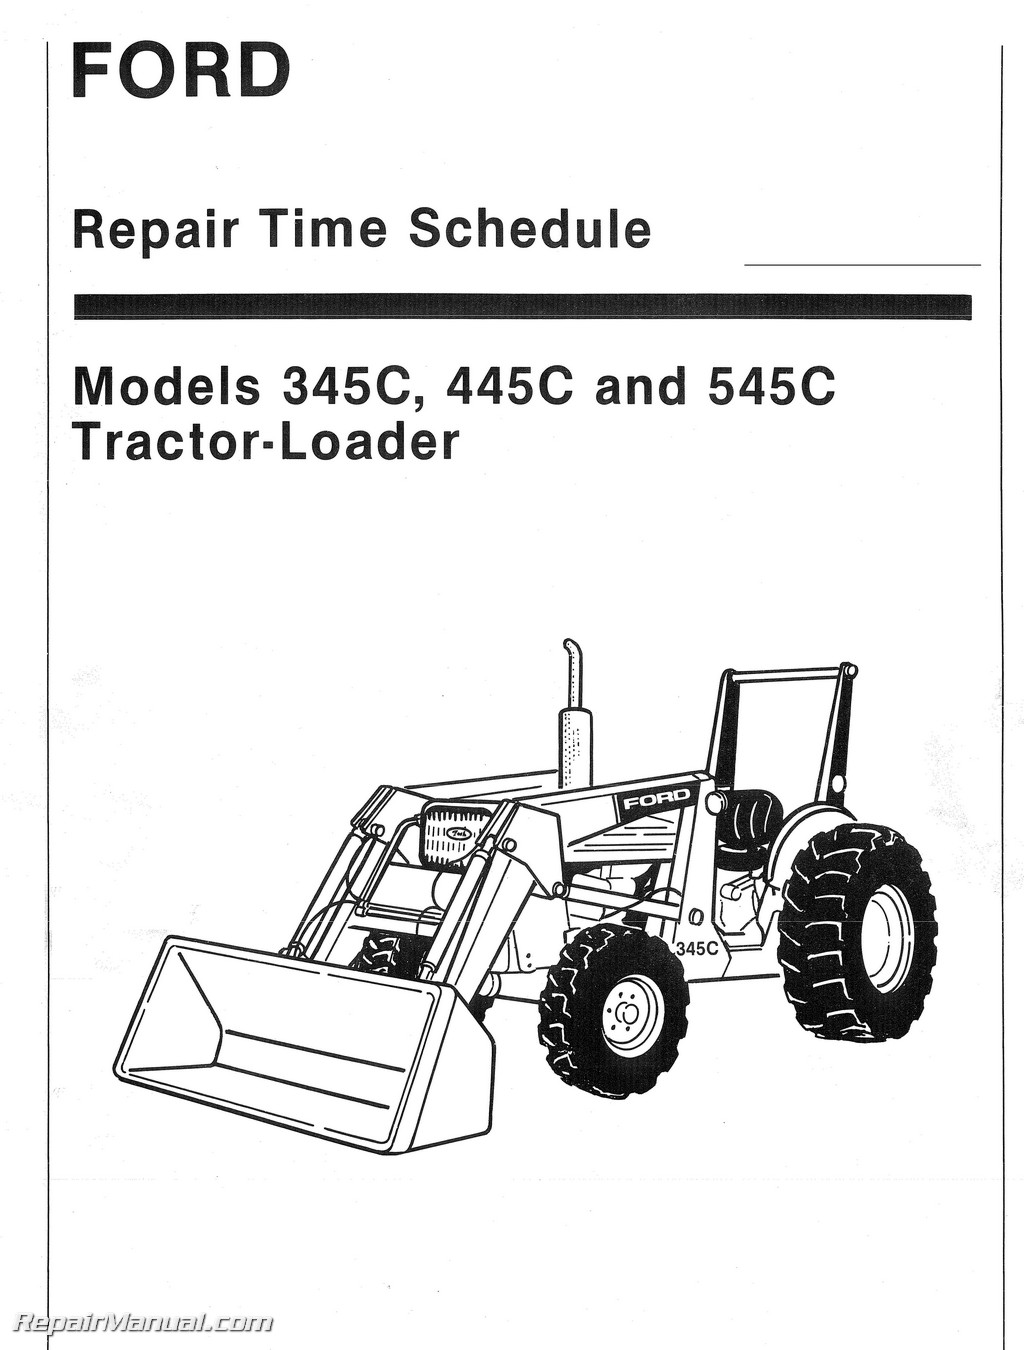 ford 345c 445c 545c tractor loader repair labor time schedule manual rh  repairmanual com